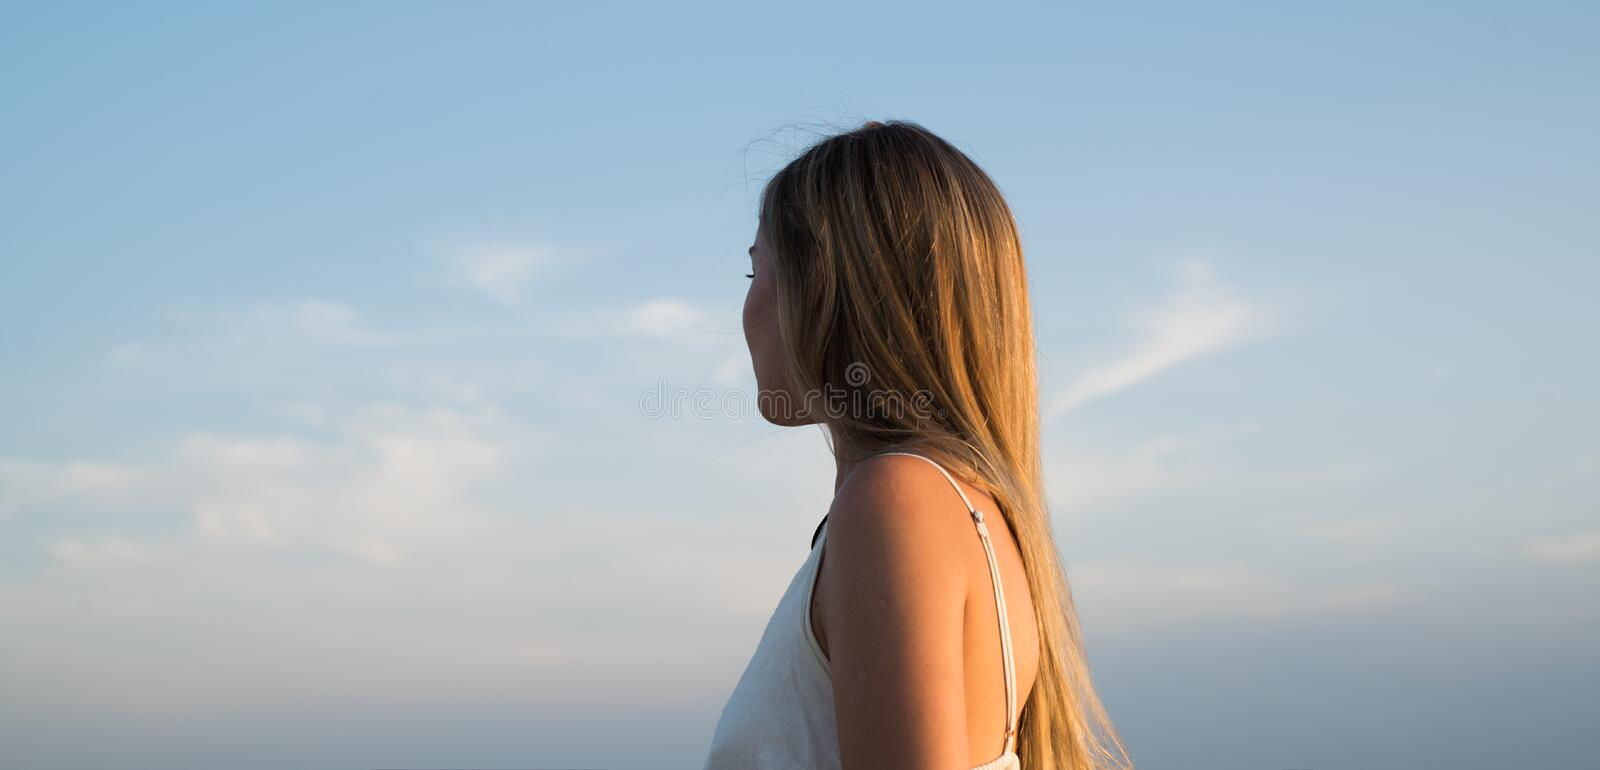 Woman looking far away. dreaming about better times. success. future life. traveling concept. girl on sunset sky. Background. nature and environment. lost in royalty free stock photography